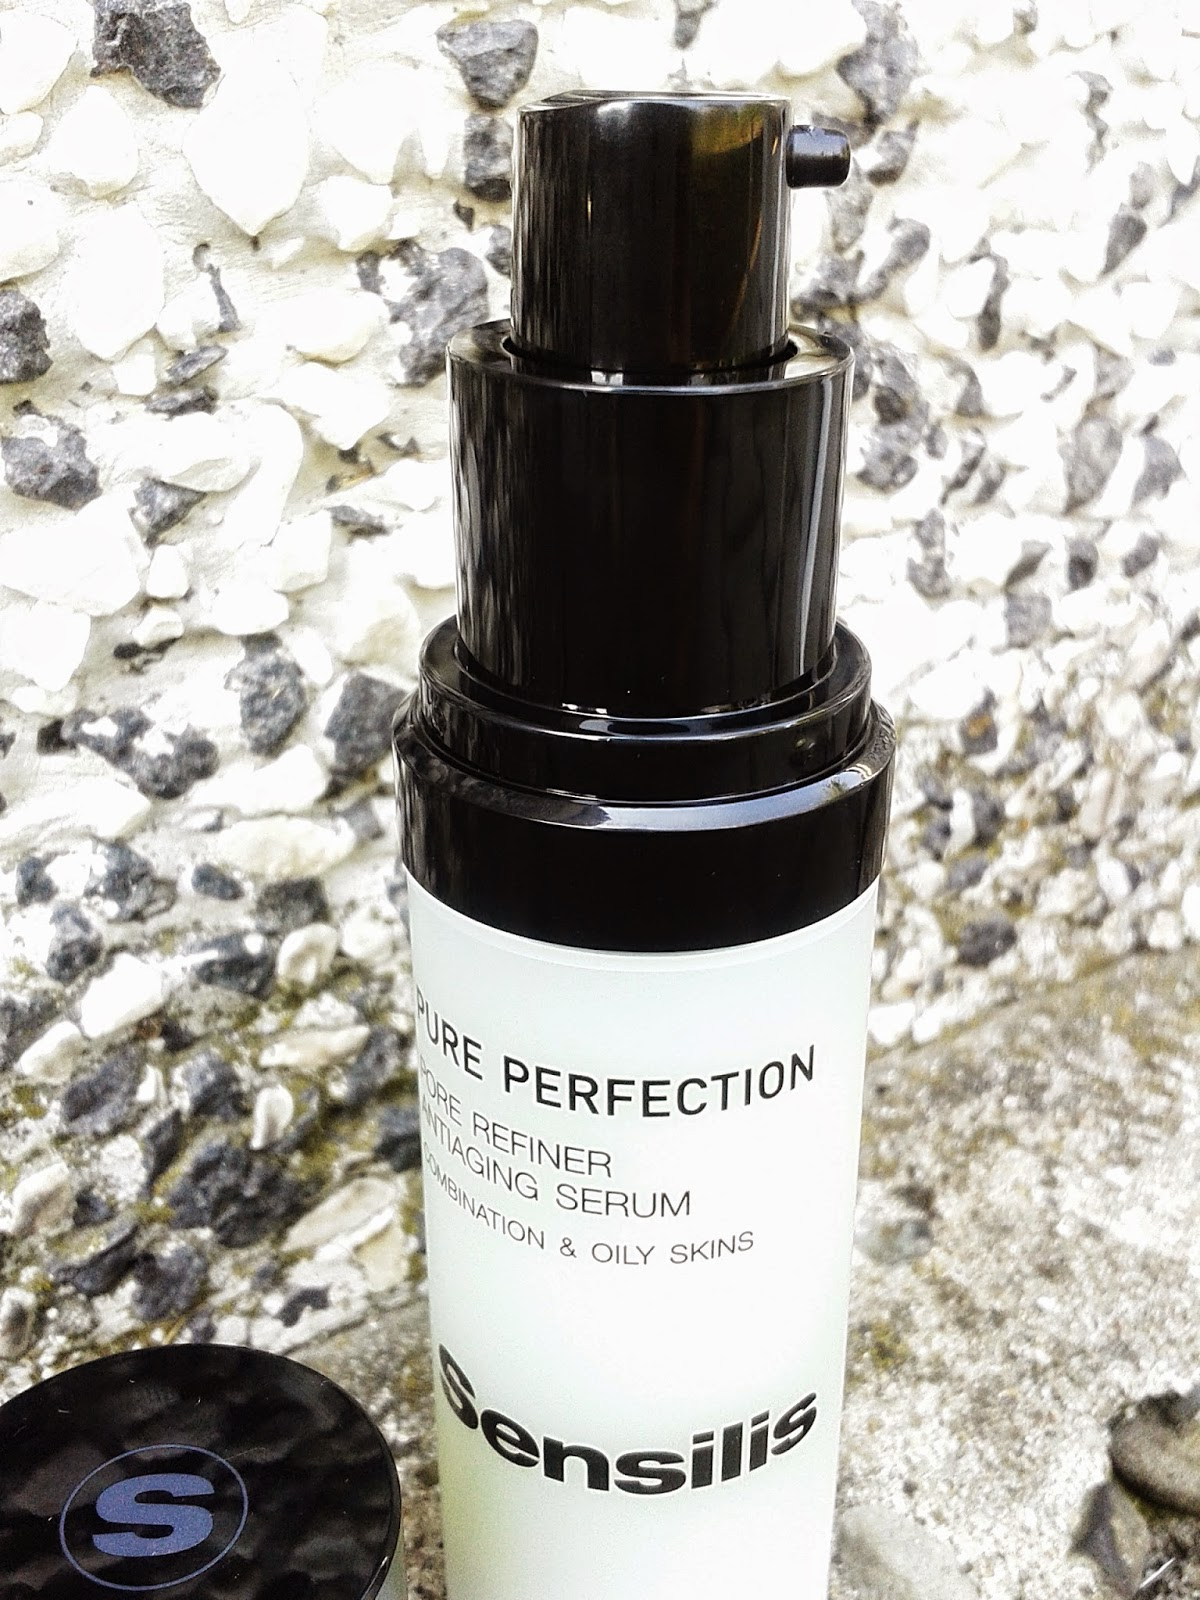 Pure Perfection serum